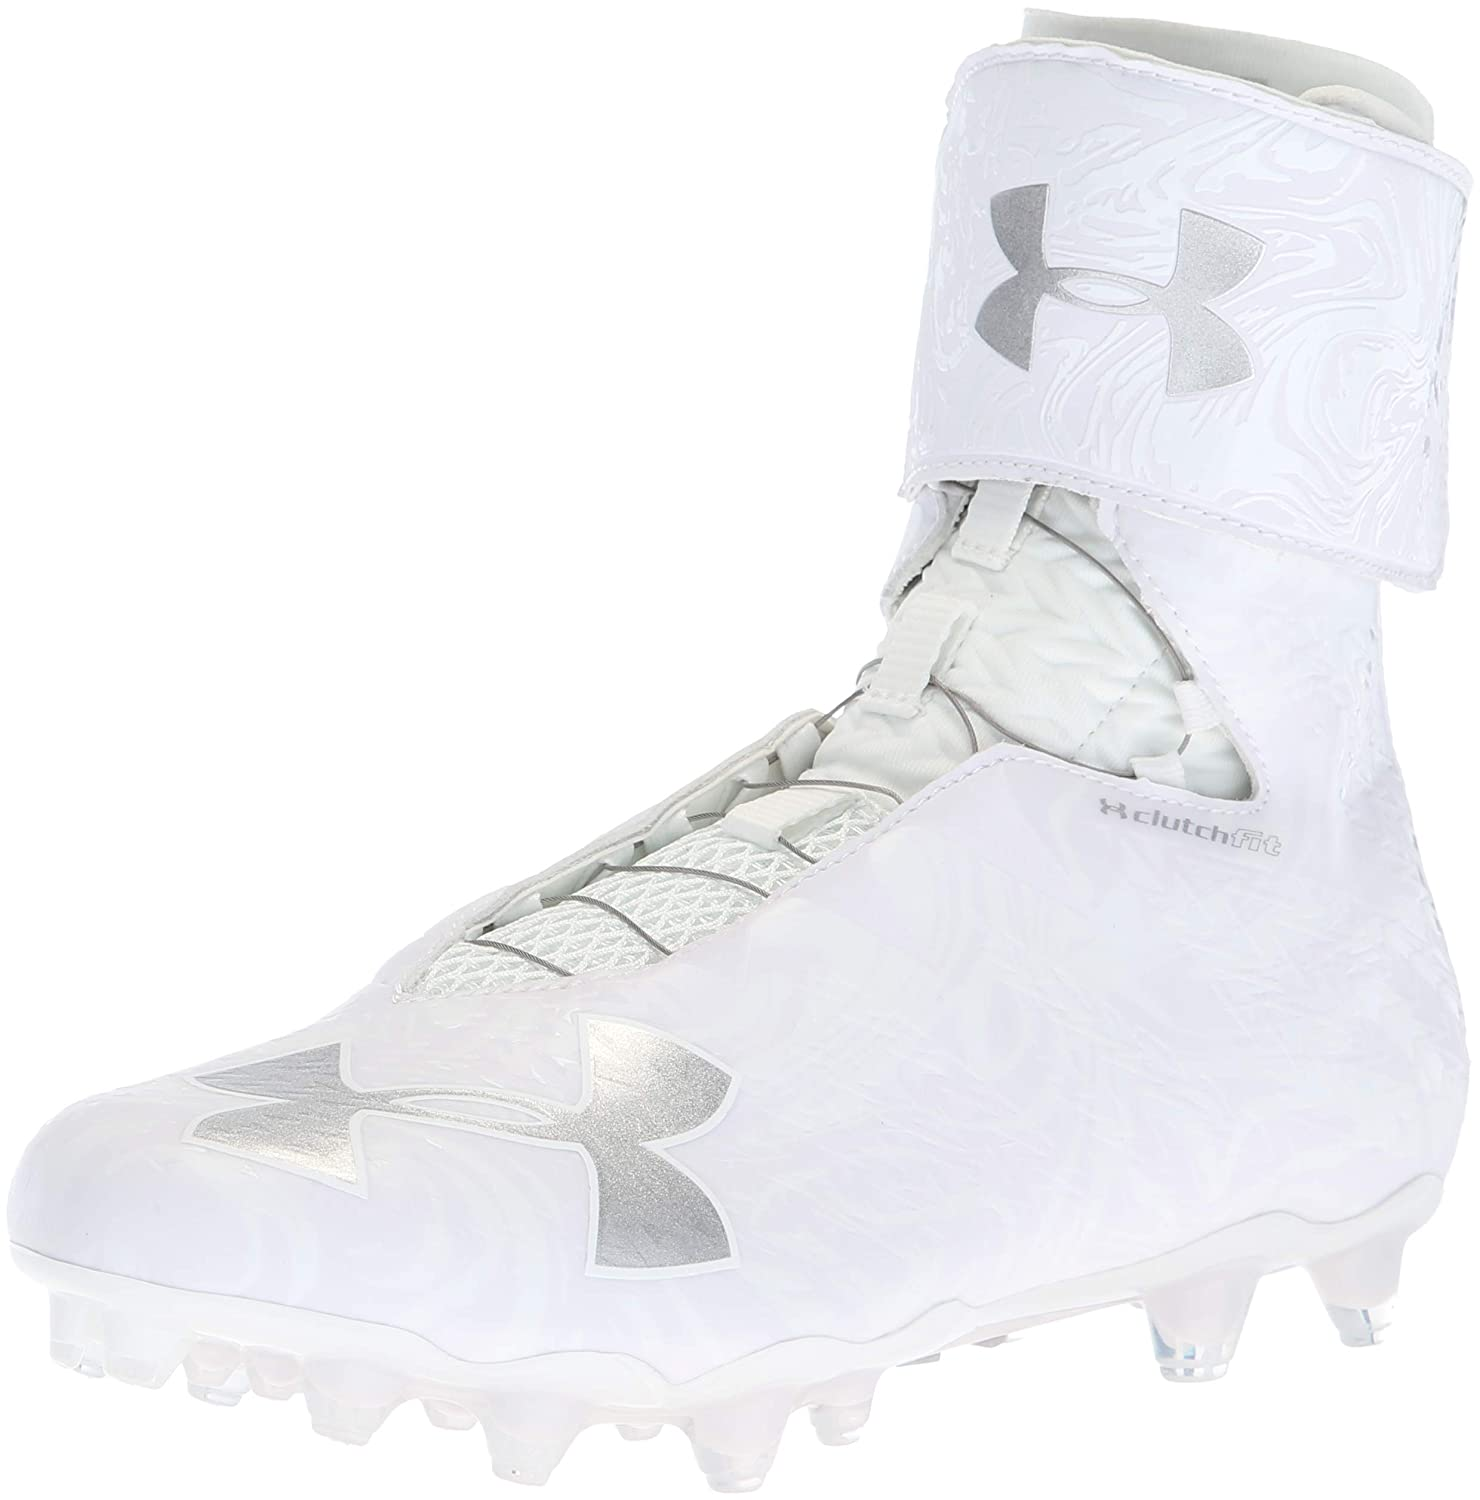 Under Armour Men's Highlight MC 2.0 Football Shoe, 100/白い, 9